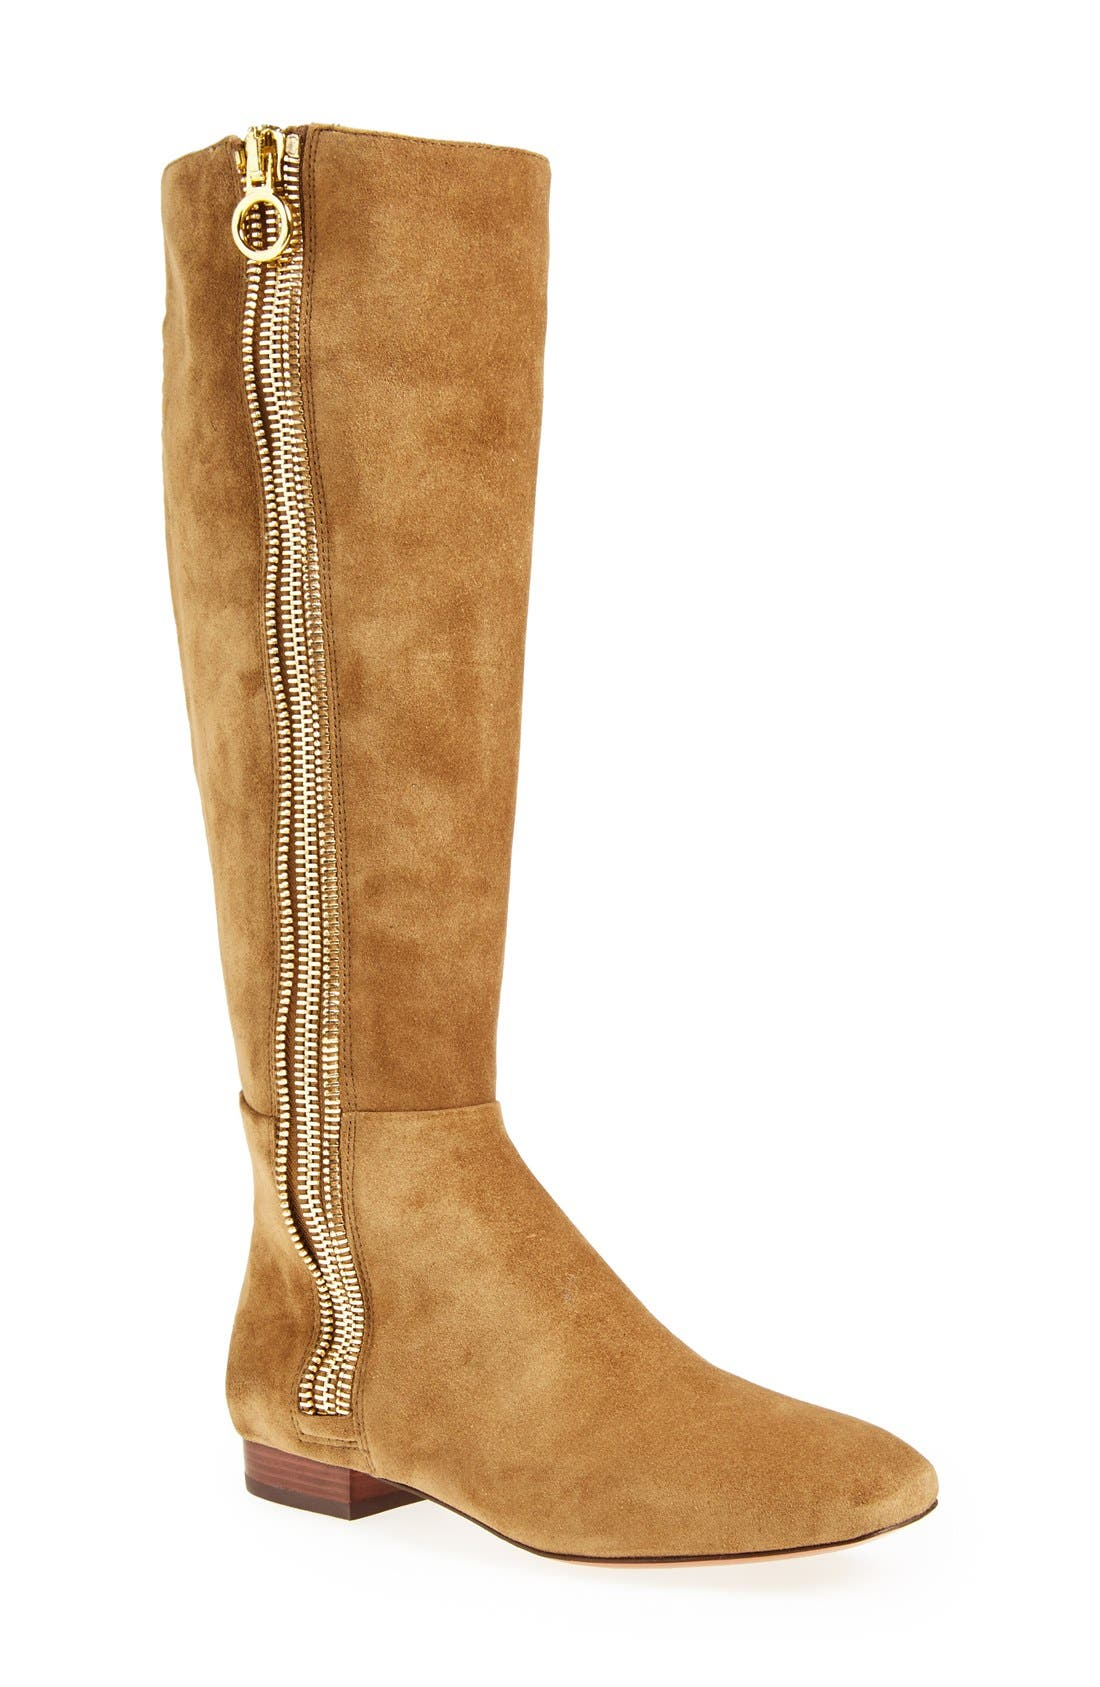 Alternate Image 1 Selected - VC Signature 'Audry' Knee High Boot (Women)